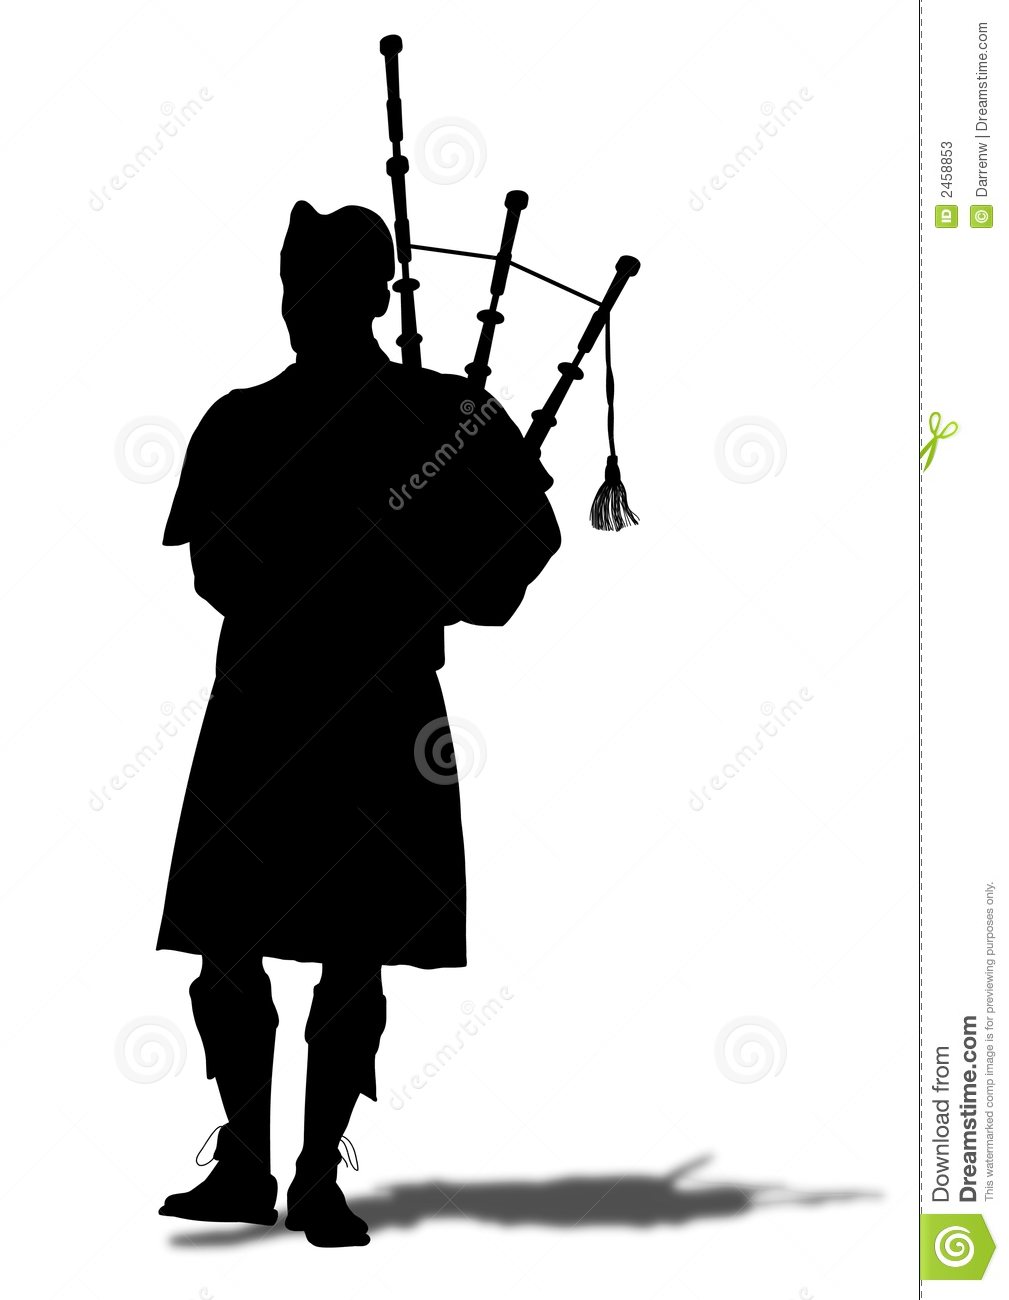 bagpipes music downloads